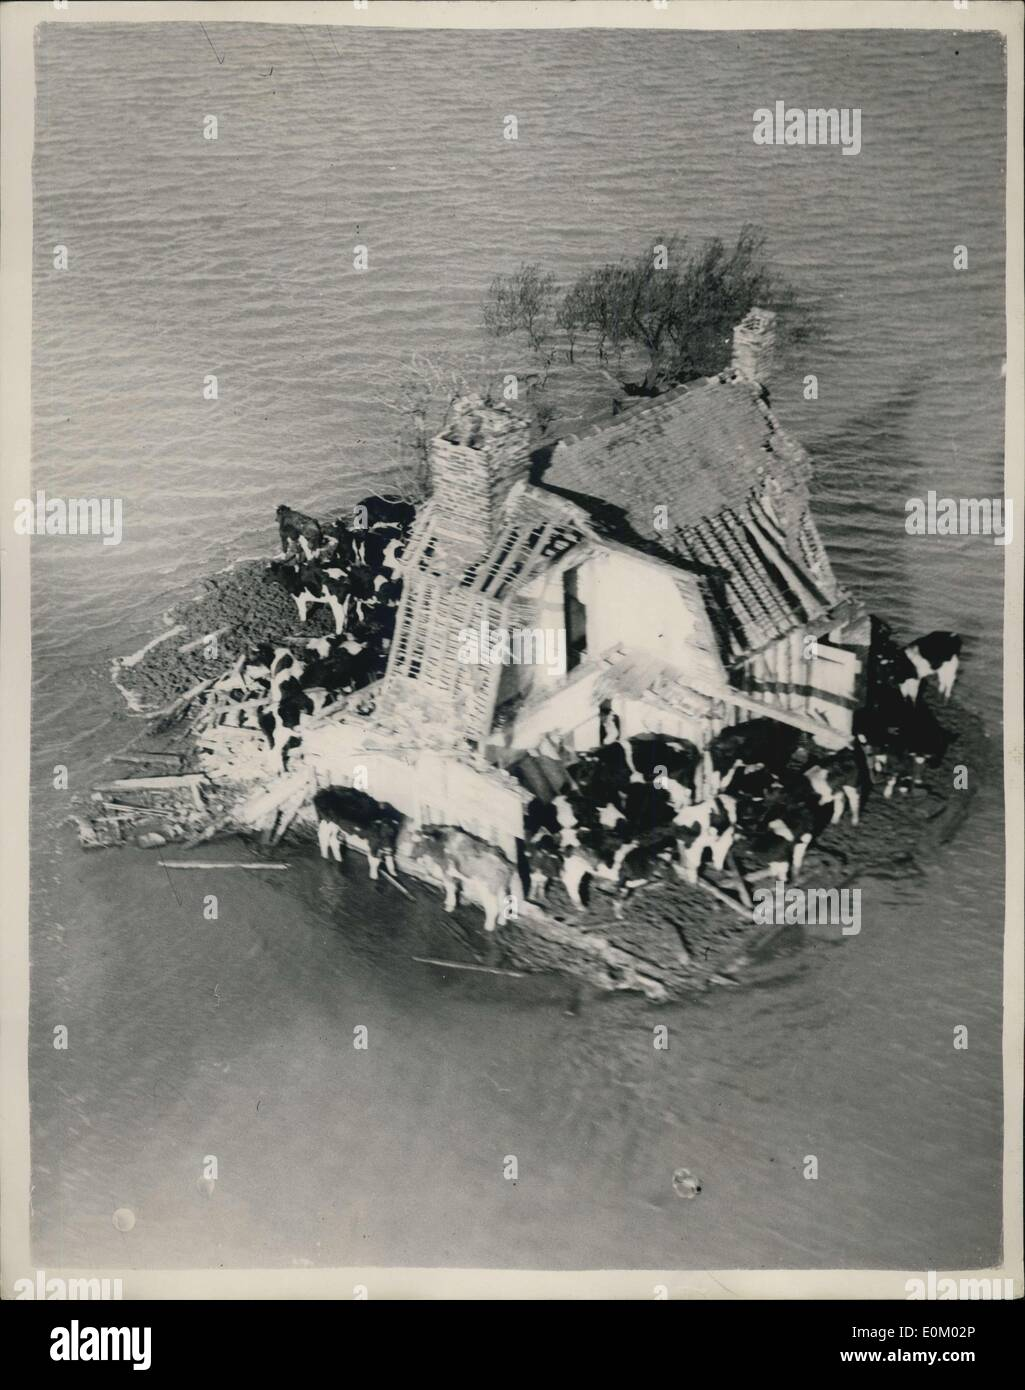 Feb. 02, 1953 - Picture from the air: Latest scenes of the Essex flood area. Cattle in ancient farmhouse on Foulness Island.: Photo shows cattle herded in the remains of an ancient farmhouse on Foulness Island, Essex as they try to keep away from the surrounding waters today. - Stock Image